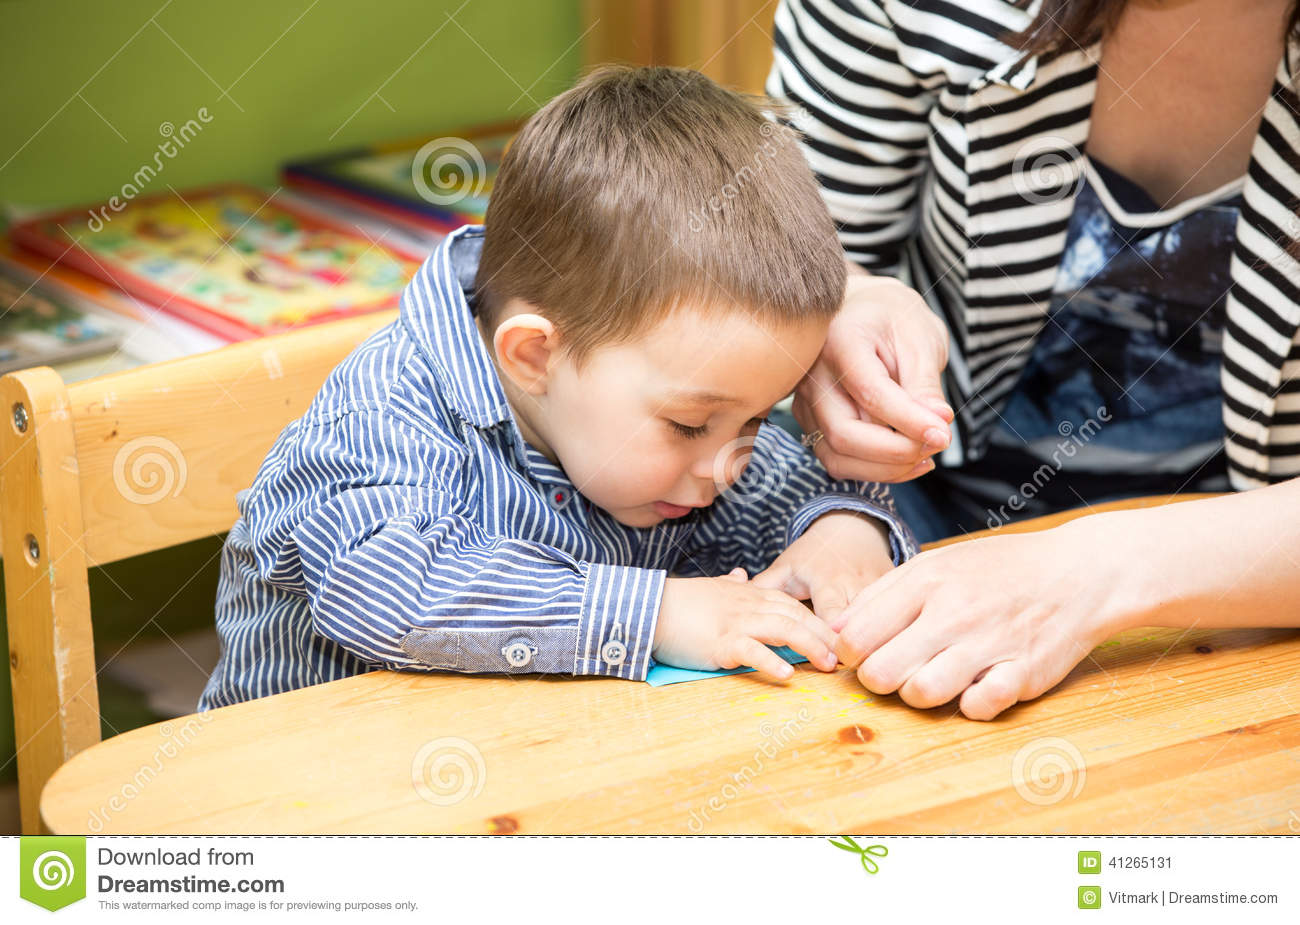 Mother and child boy drawing together with color pencils in preschool at table in kindergarten